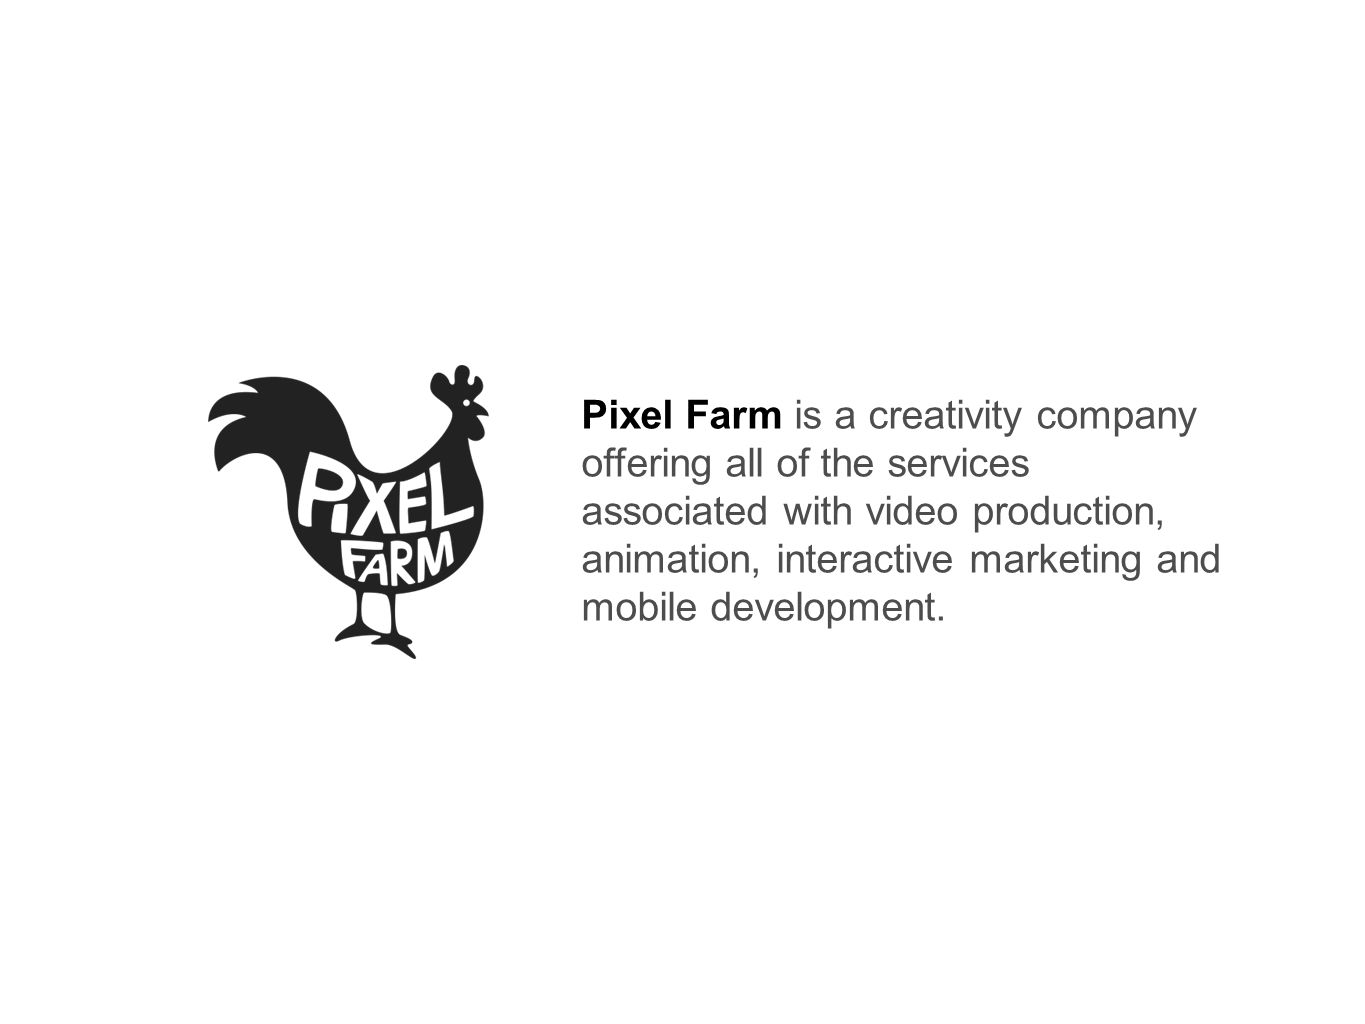 Pixel Farm is a creativity company offering all of the services associated with video production, animation, interactive marketing and mobile development.